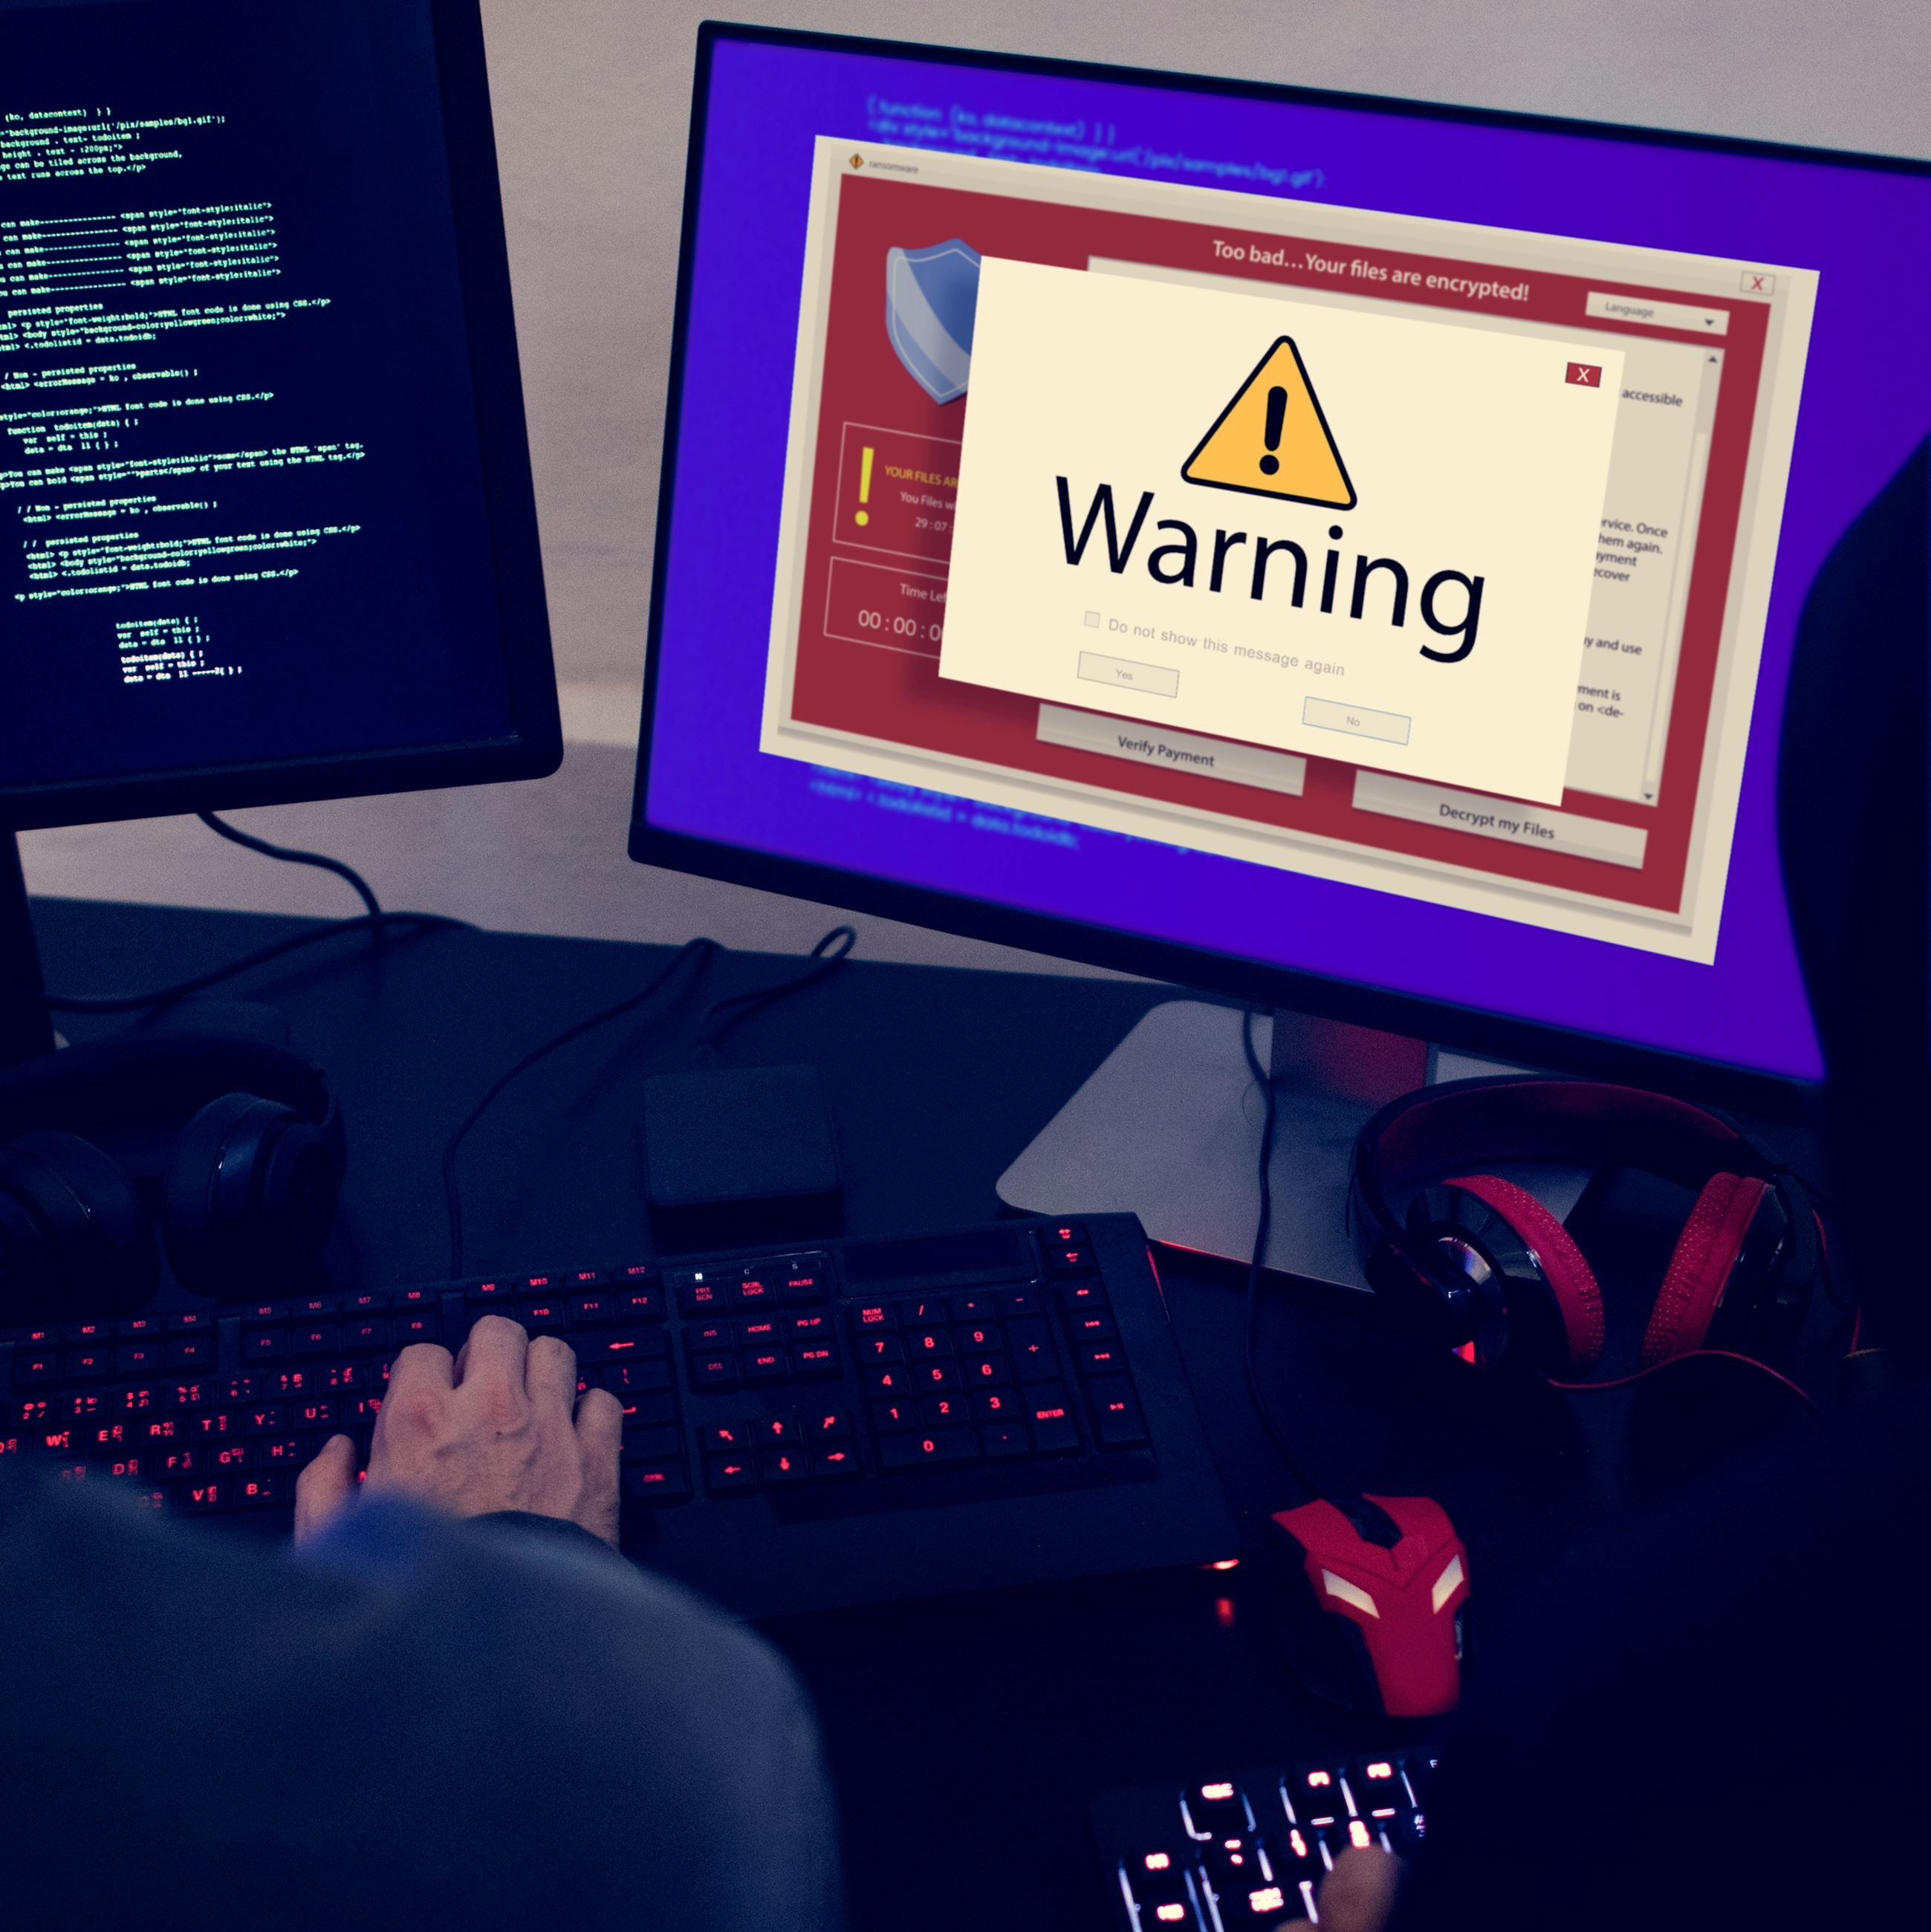 computer-with-warning-pop-up-sign-window-PEA6LF5